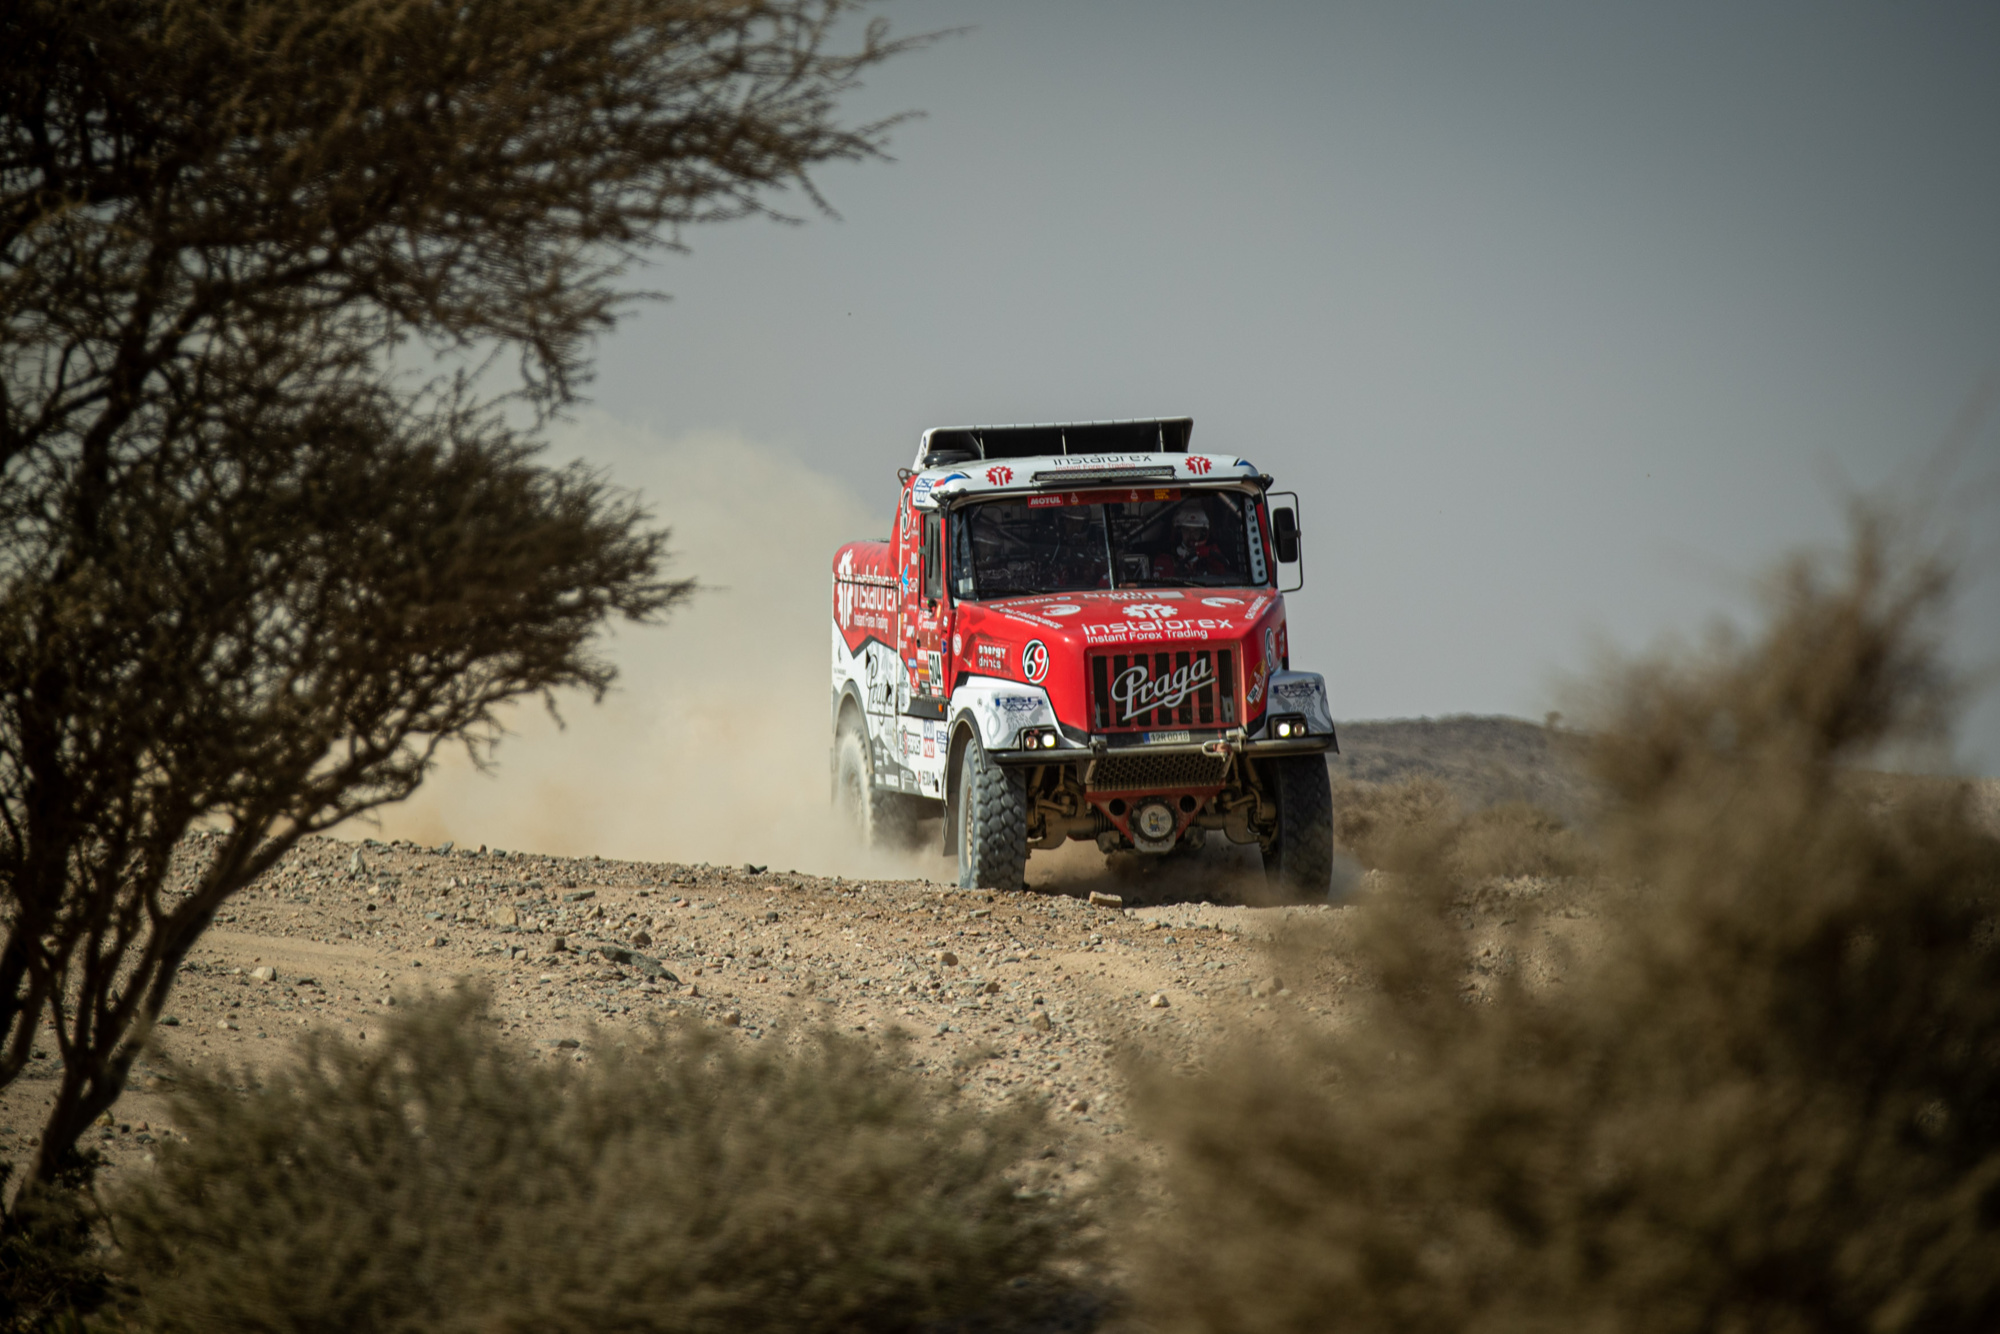 Dakar 2021: Nerve-wracking but beautiful second place for Loprais